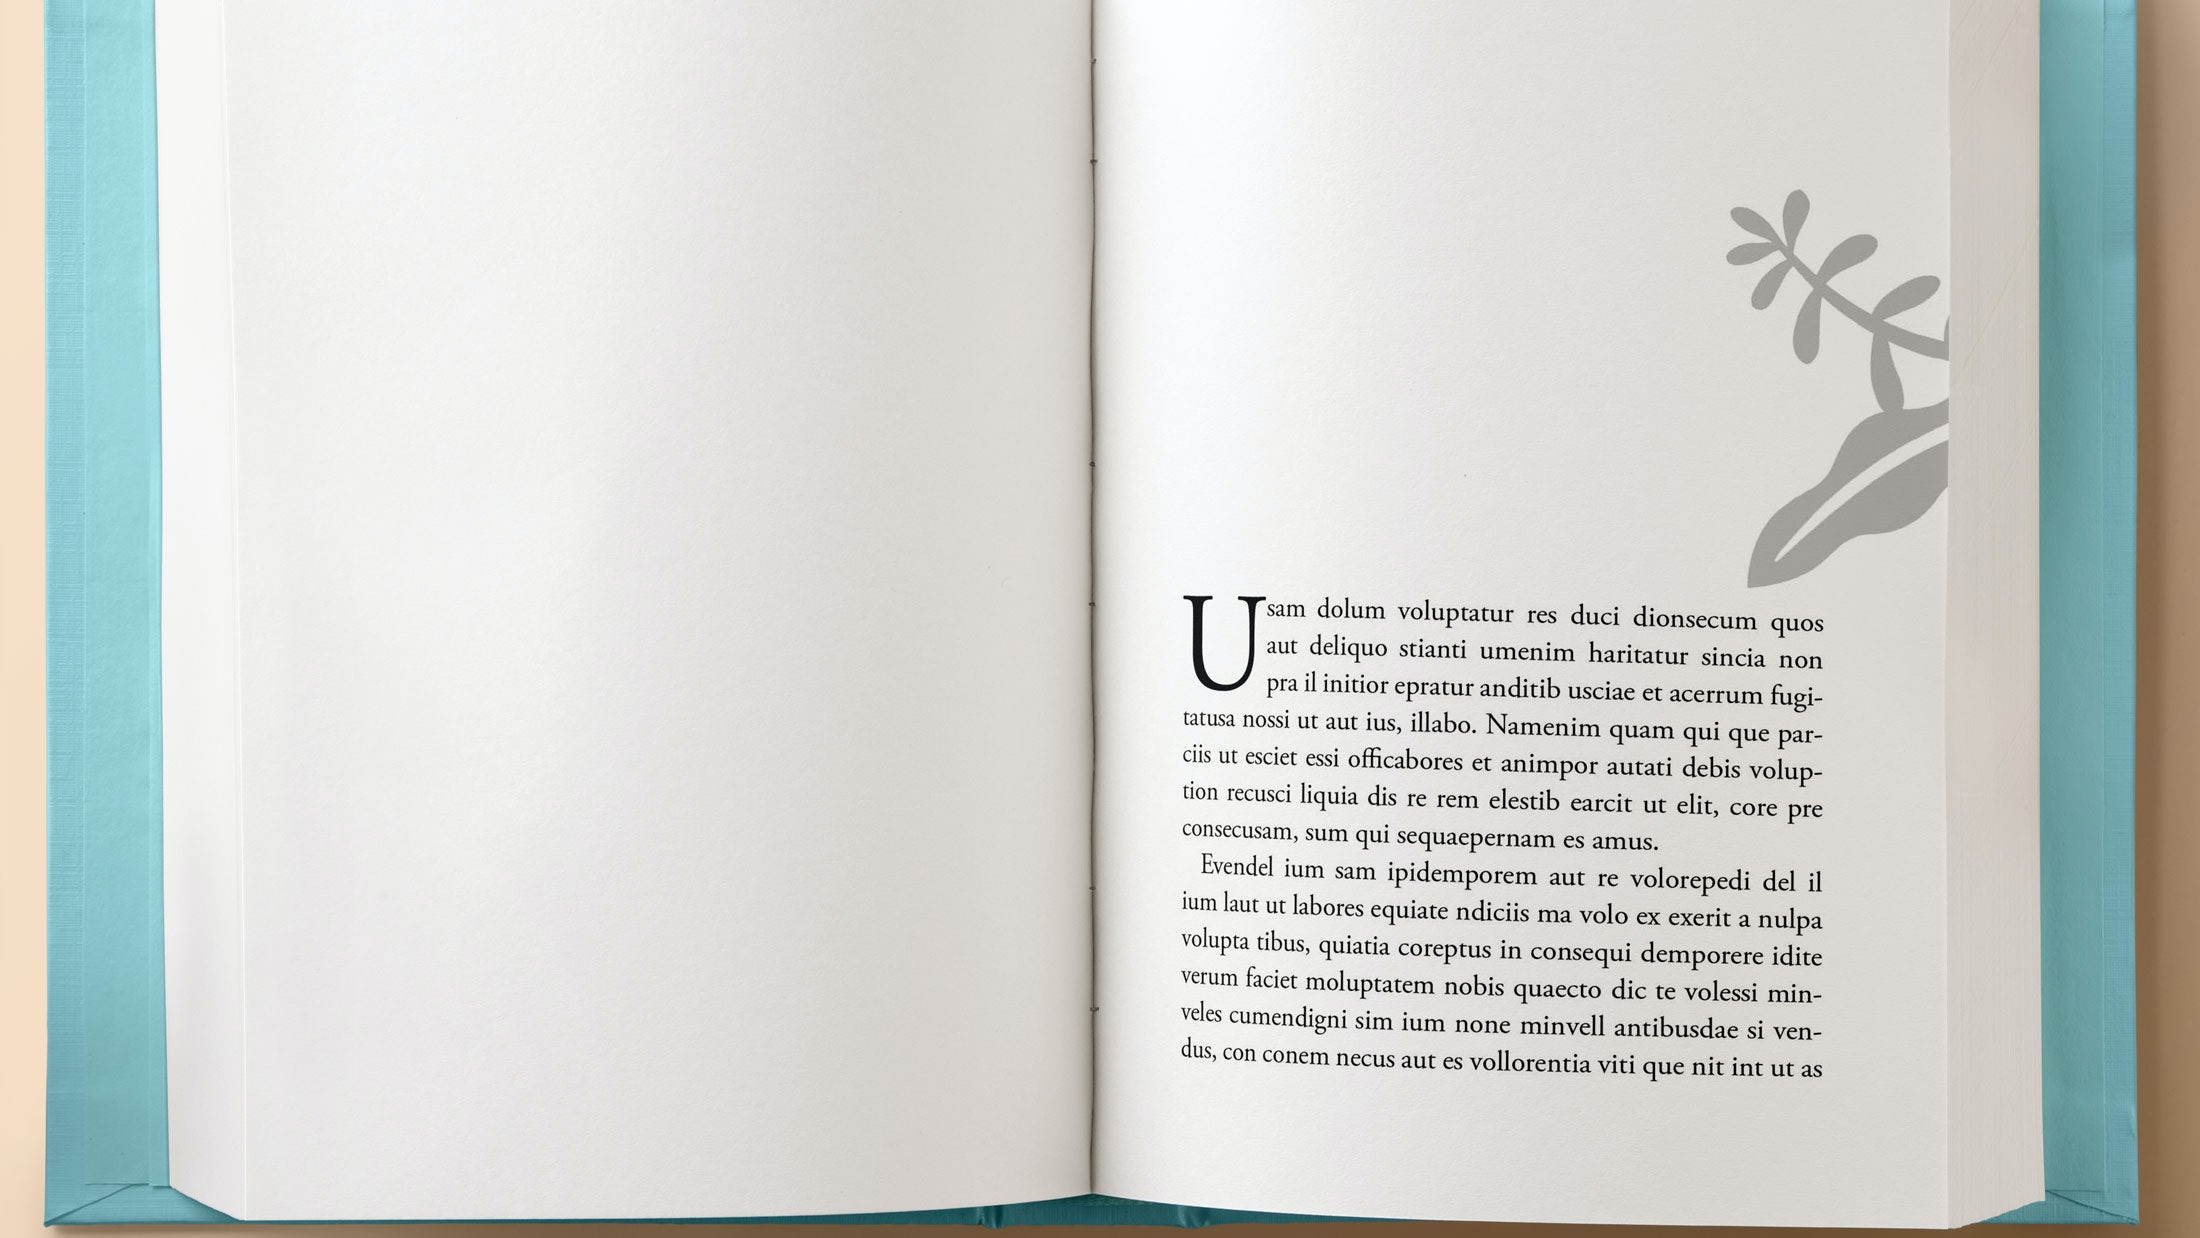 7 book layout design and typesetting tips - 99designs